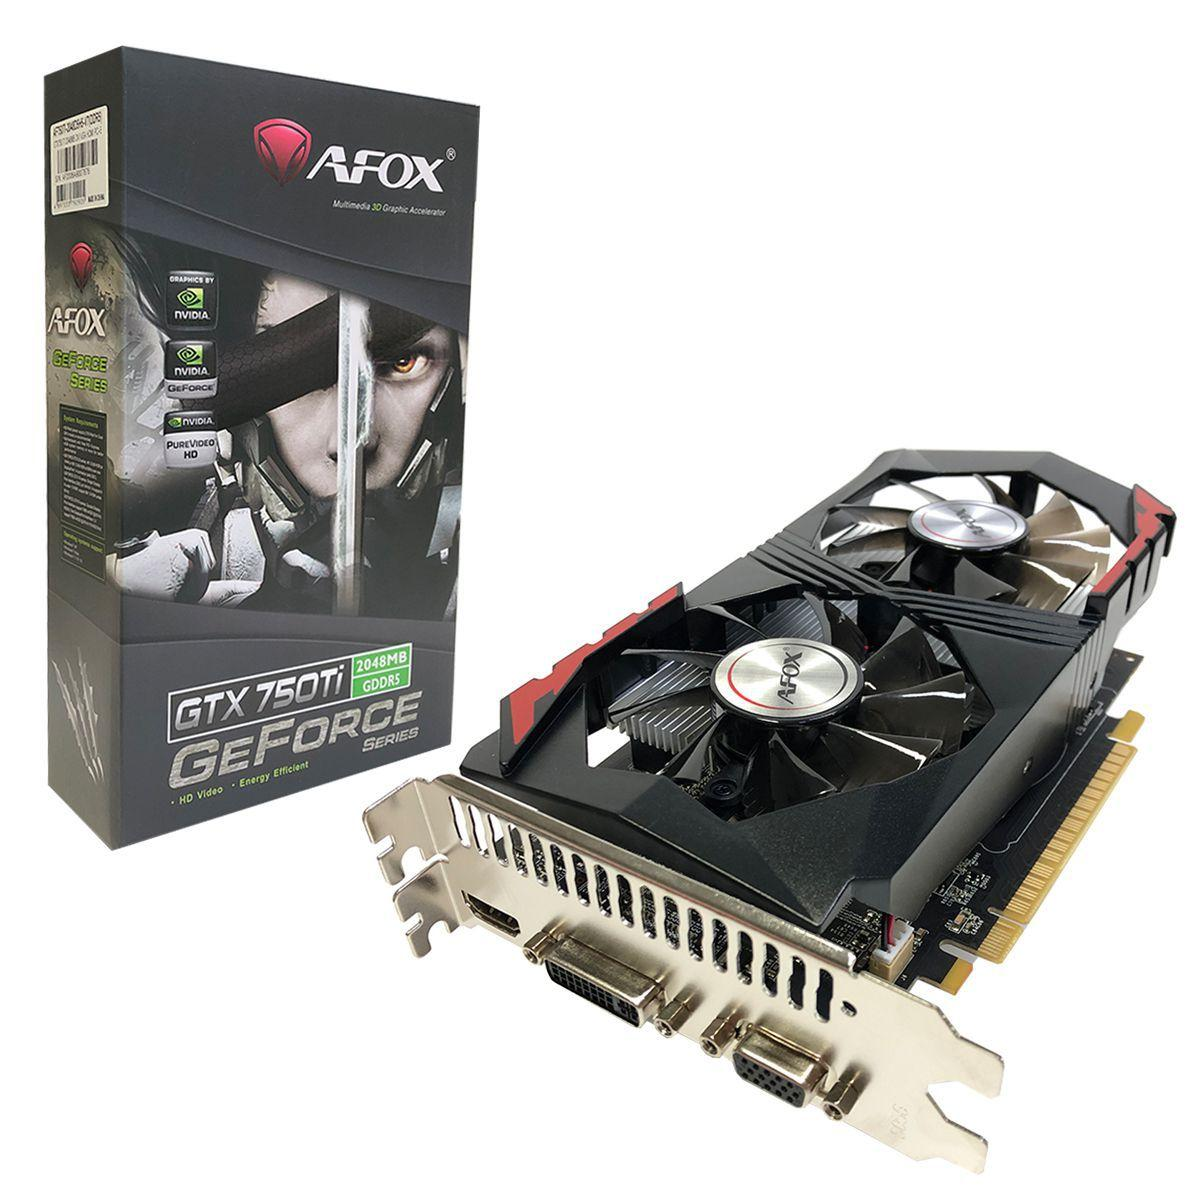 PLACA DE VIDEO AFOX GTX750TI 2GB  GDDR5  AF750TI-2048D5H5-V7